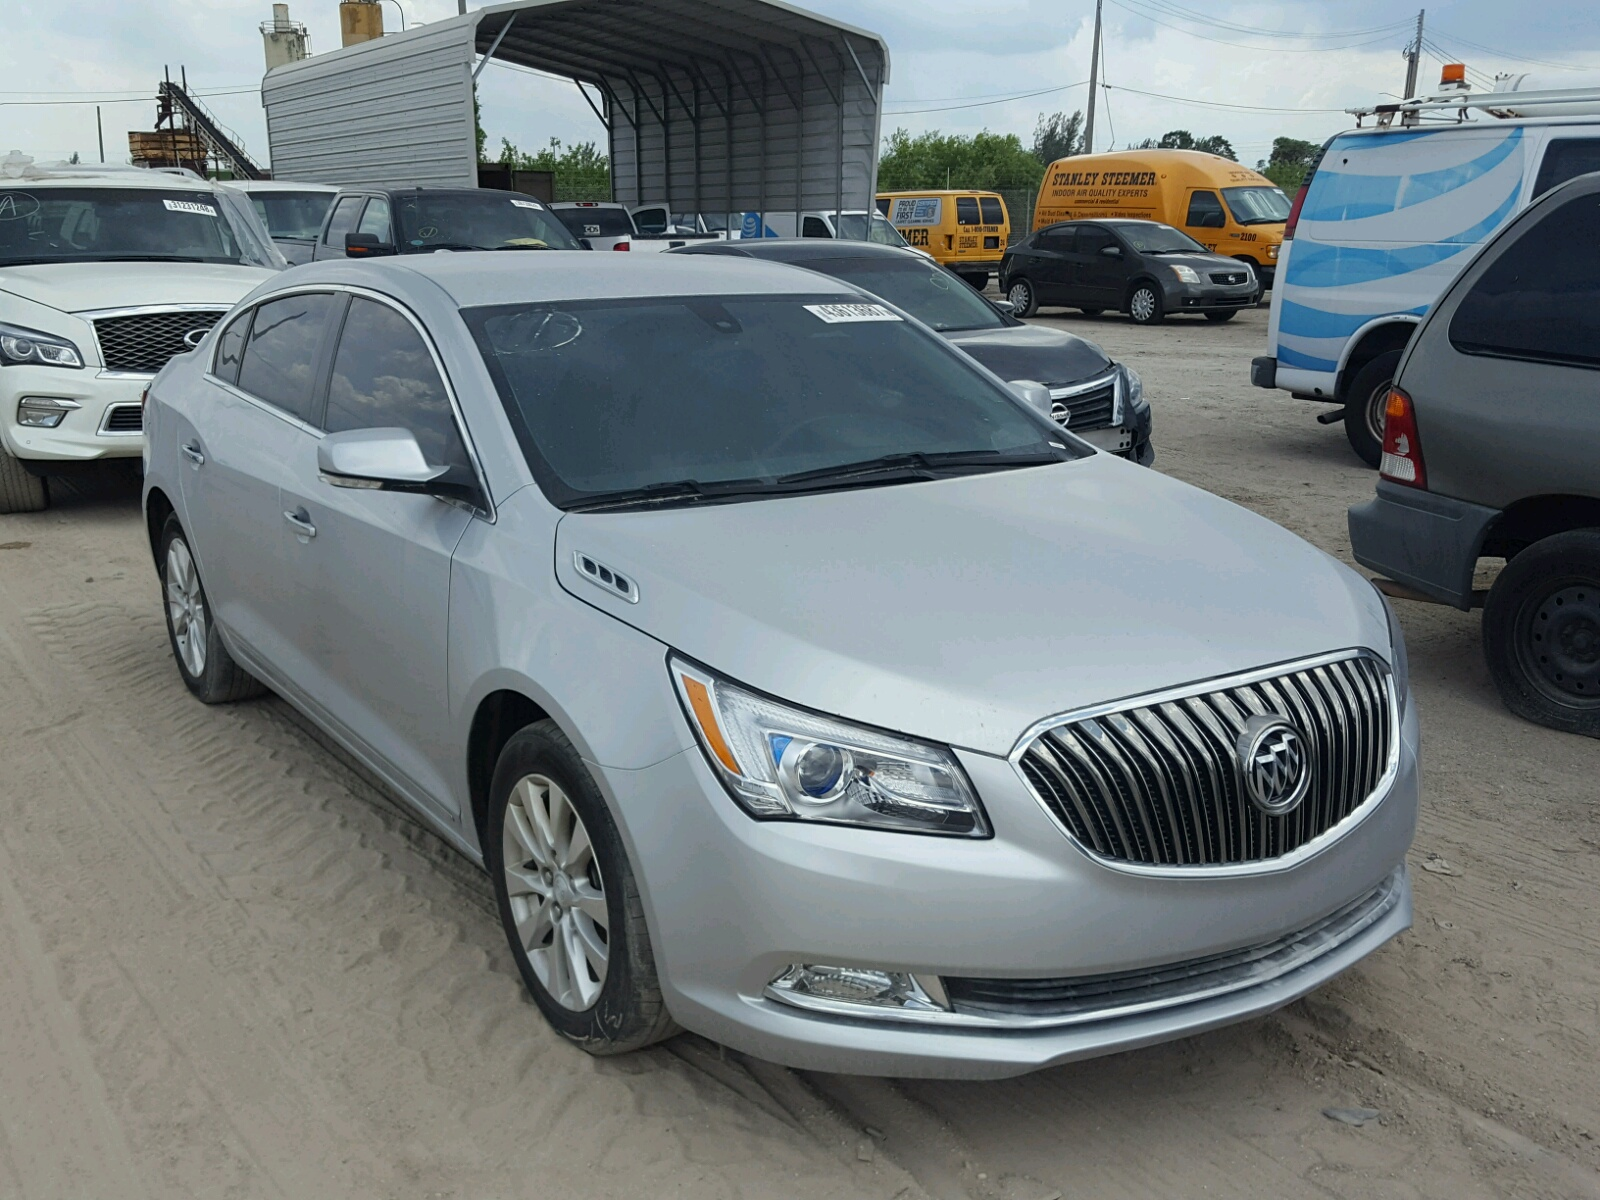 Auto Auction Ended on VIN 1G4HP54K0Y 2000 BUICK LESABRE CU